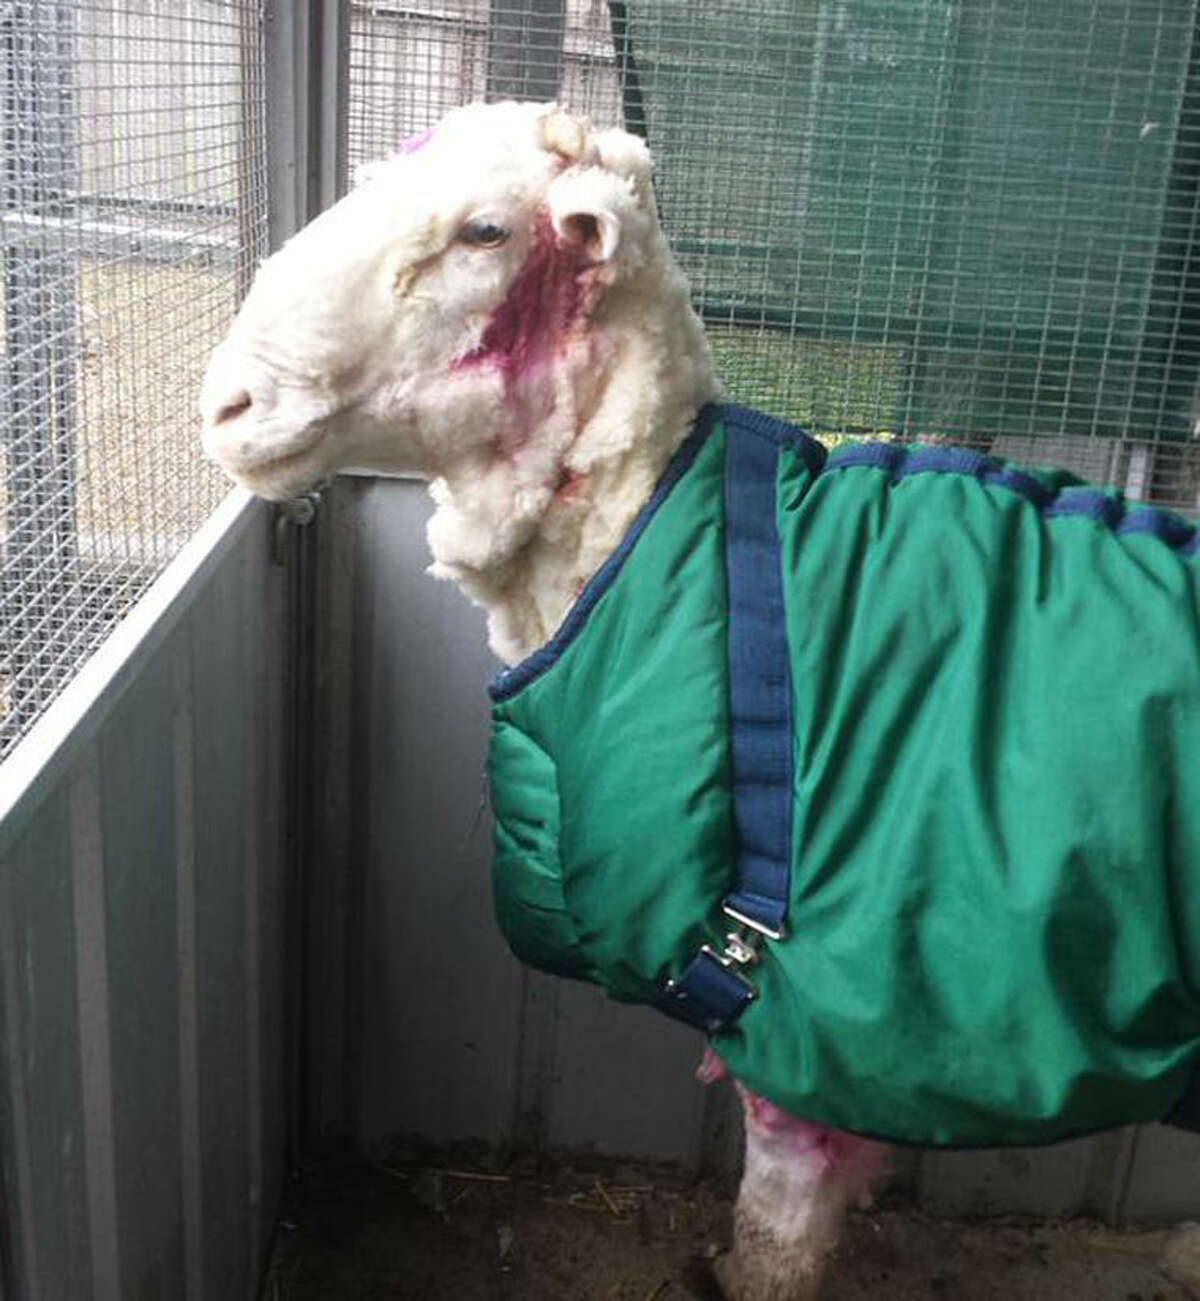 In this photo provided by the RSPCA/Australian Capital Territory, a sheep found in Australian scrubland stands in a pen after it was shorn for perhaps the first time in Canberra, Australia, Thursday, Sept. 3, 2015. The wild, castrated merino ram dubbed Chris, yielded 40 kilograms (89 pounds) of wool - the equivalent of 30 sweaters - and shedding almost half his body weight. (RSPCA/ACT via AP) EDITORIAL USE ONLY, NO SALES